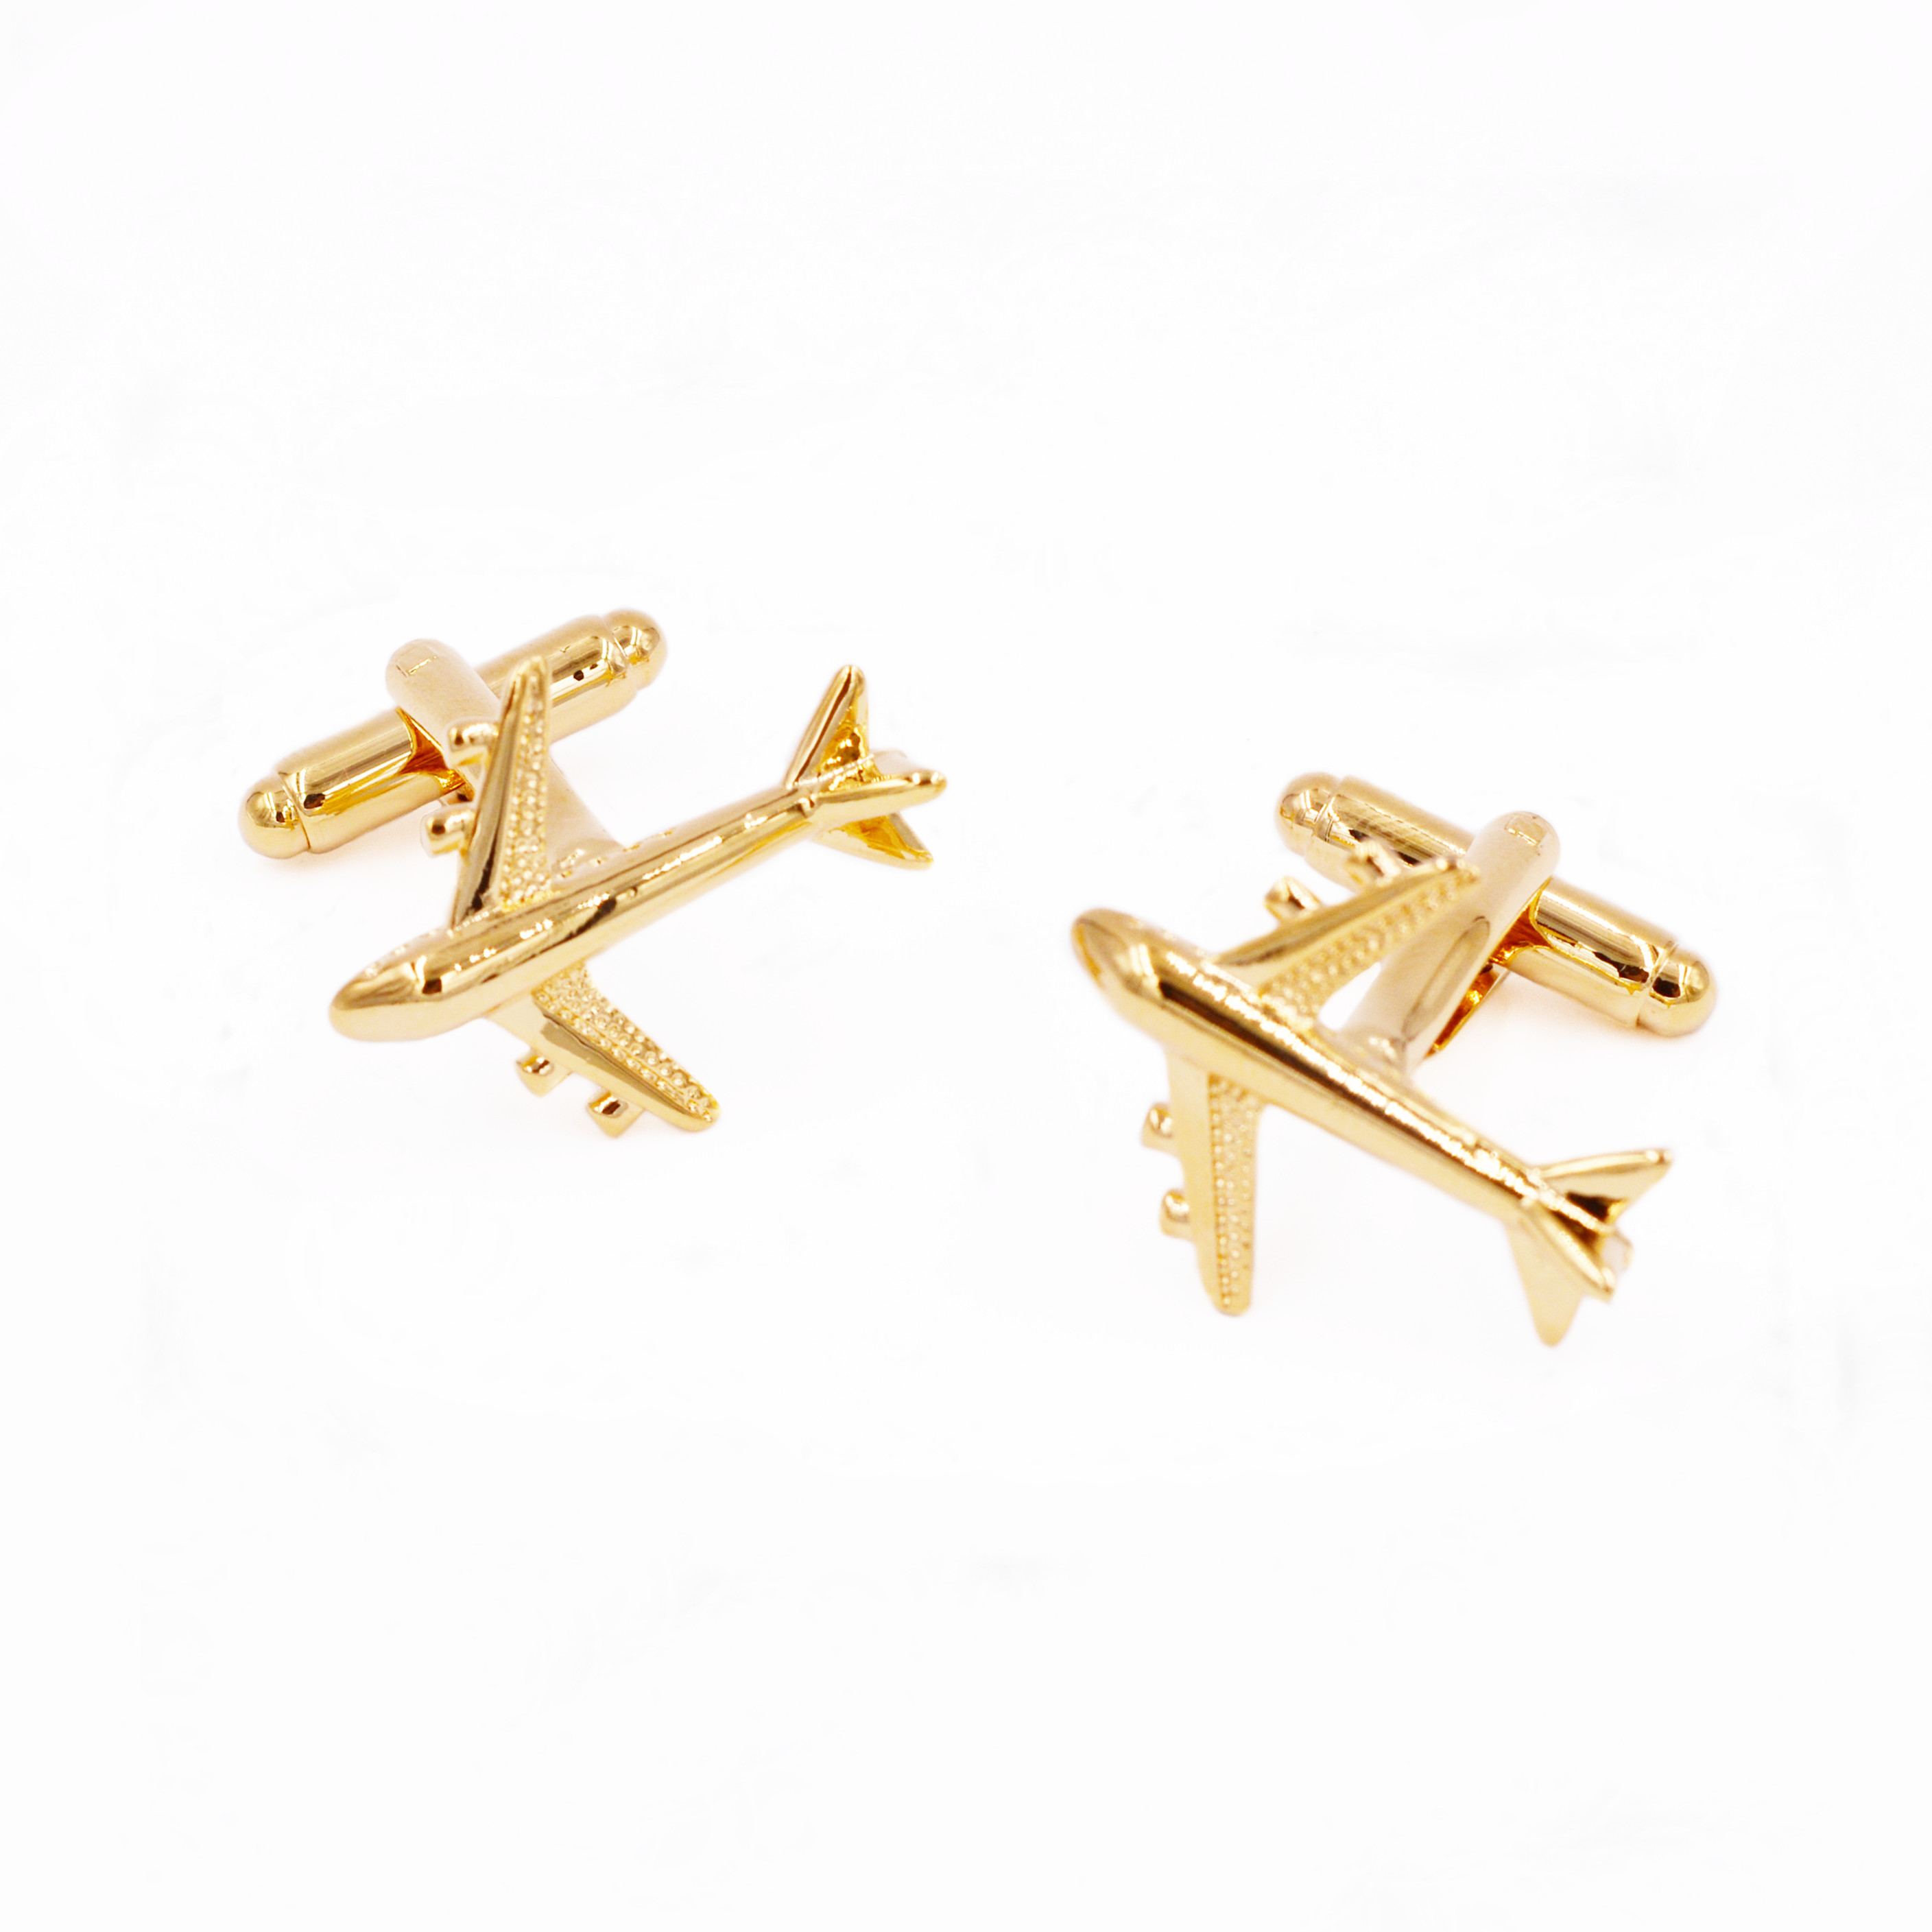 2017 Fashion Hot Sale Real Tie Clip Lepton Plane Styling Cuff links Mens AirPlane Cufflinks For Mens Gifts Cufflinks Wedding gi